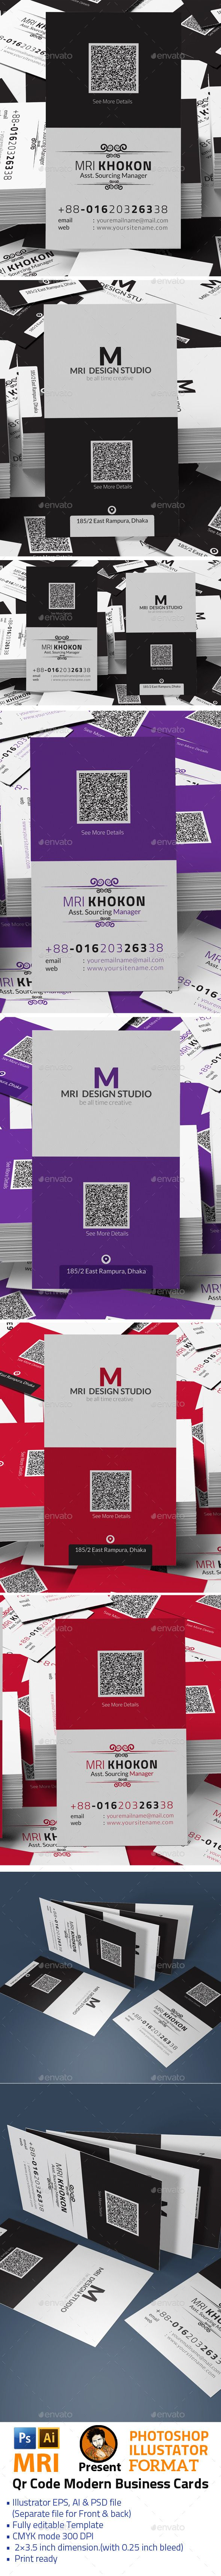 35 best Business Cards Qr Code images on Pinterest